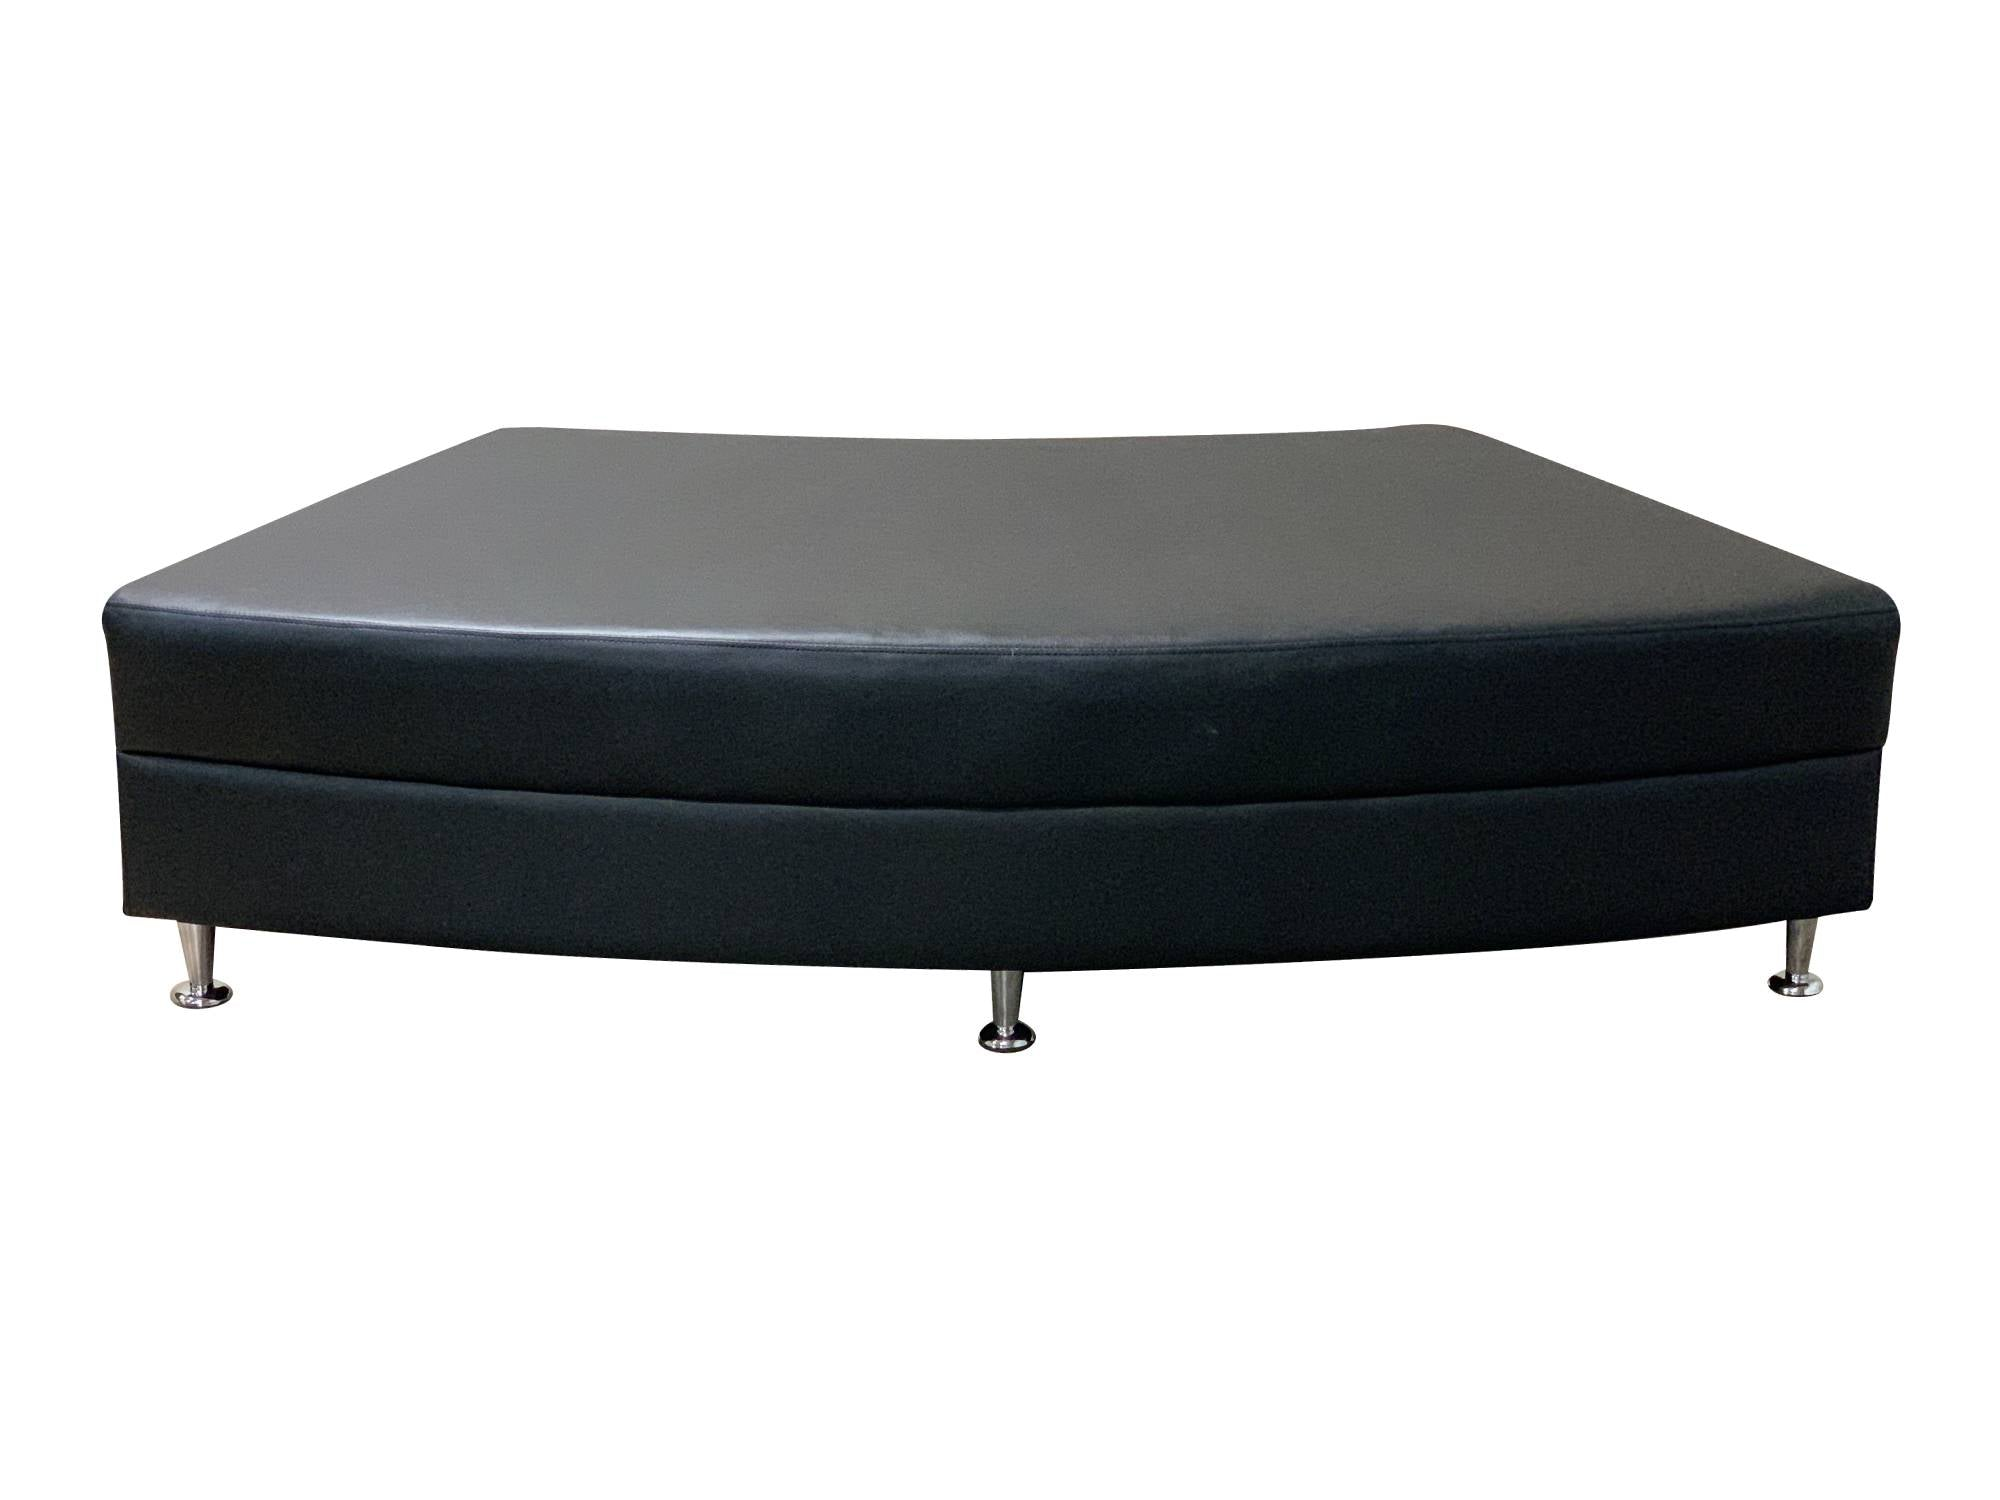 LUXURY QTR CIRCLE OTTOMAN - BLACK